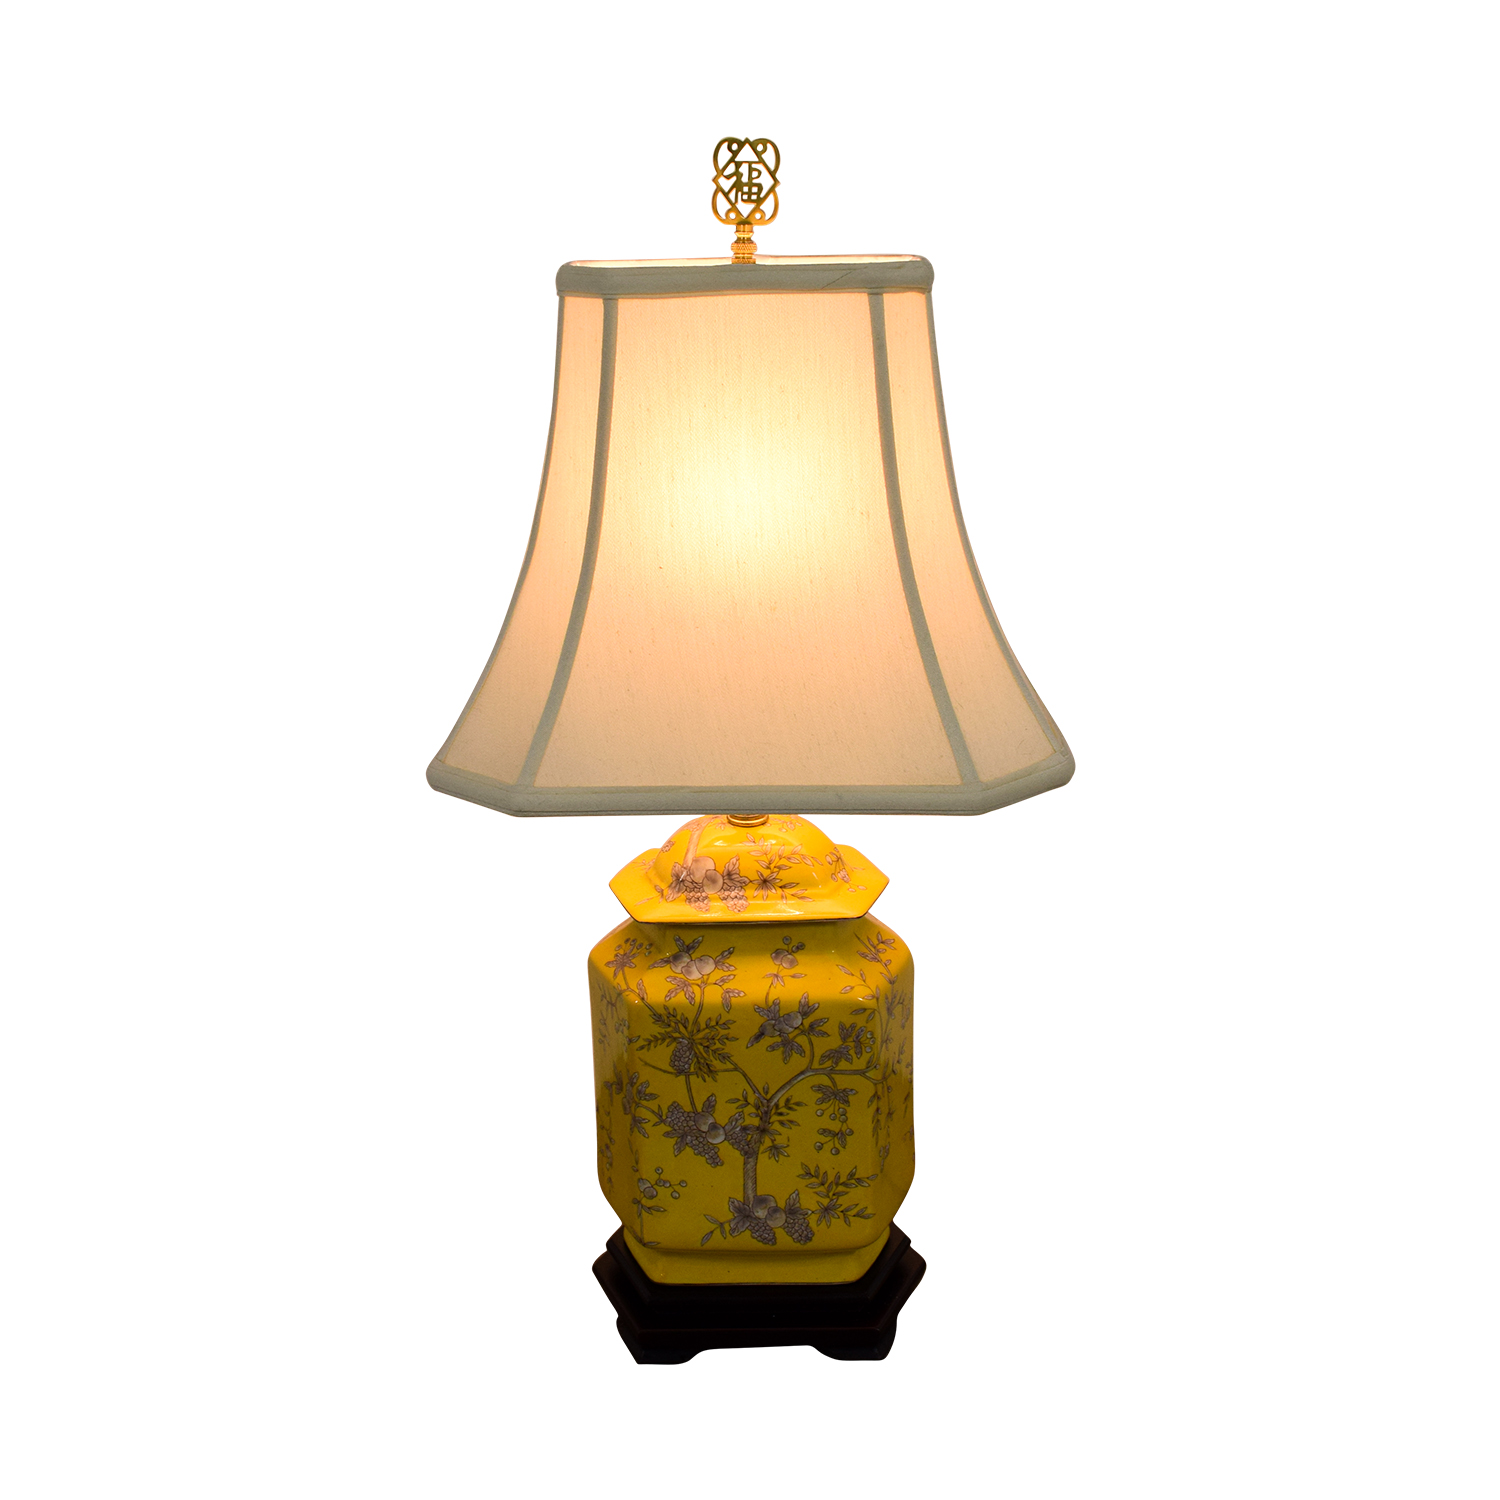 buy Yellow Fruit Chinese Lamp Lamps